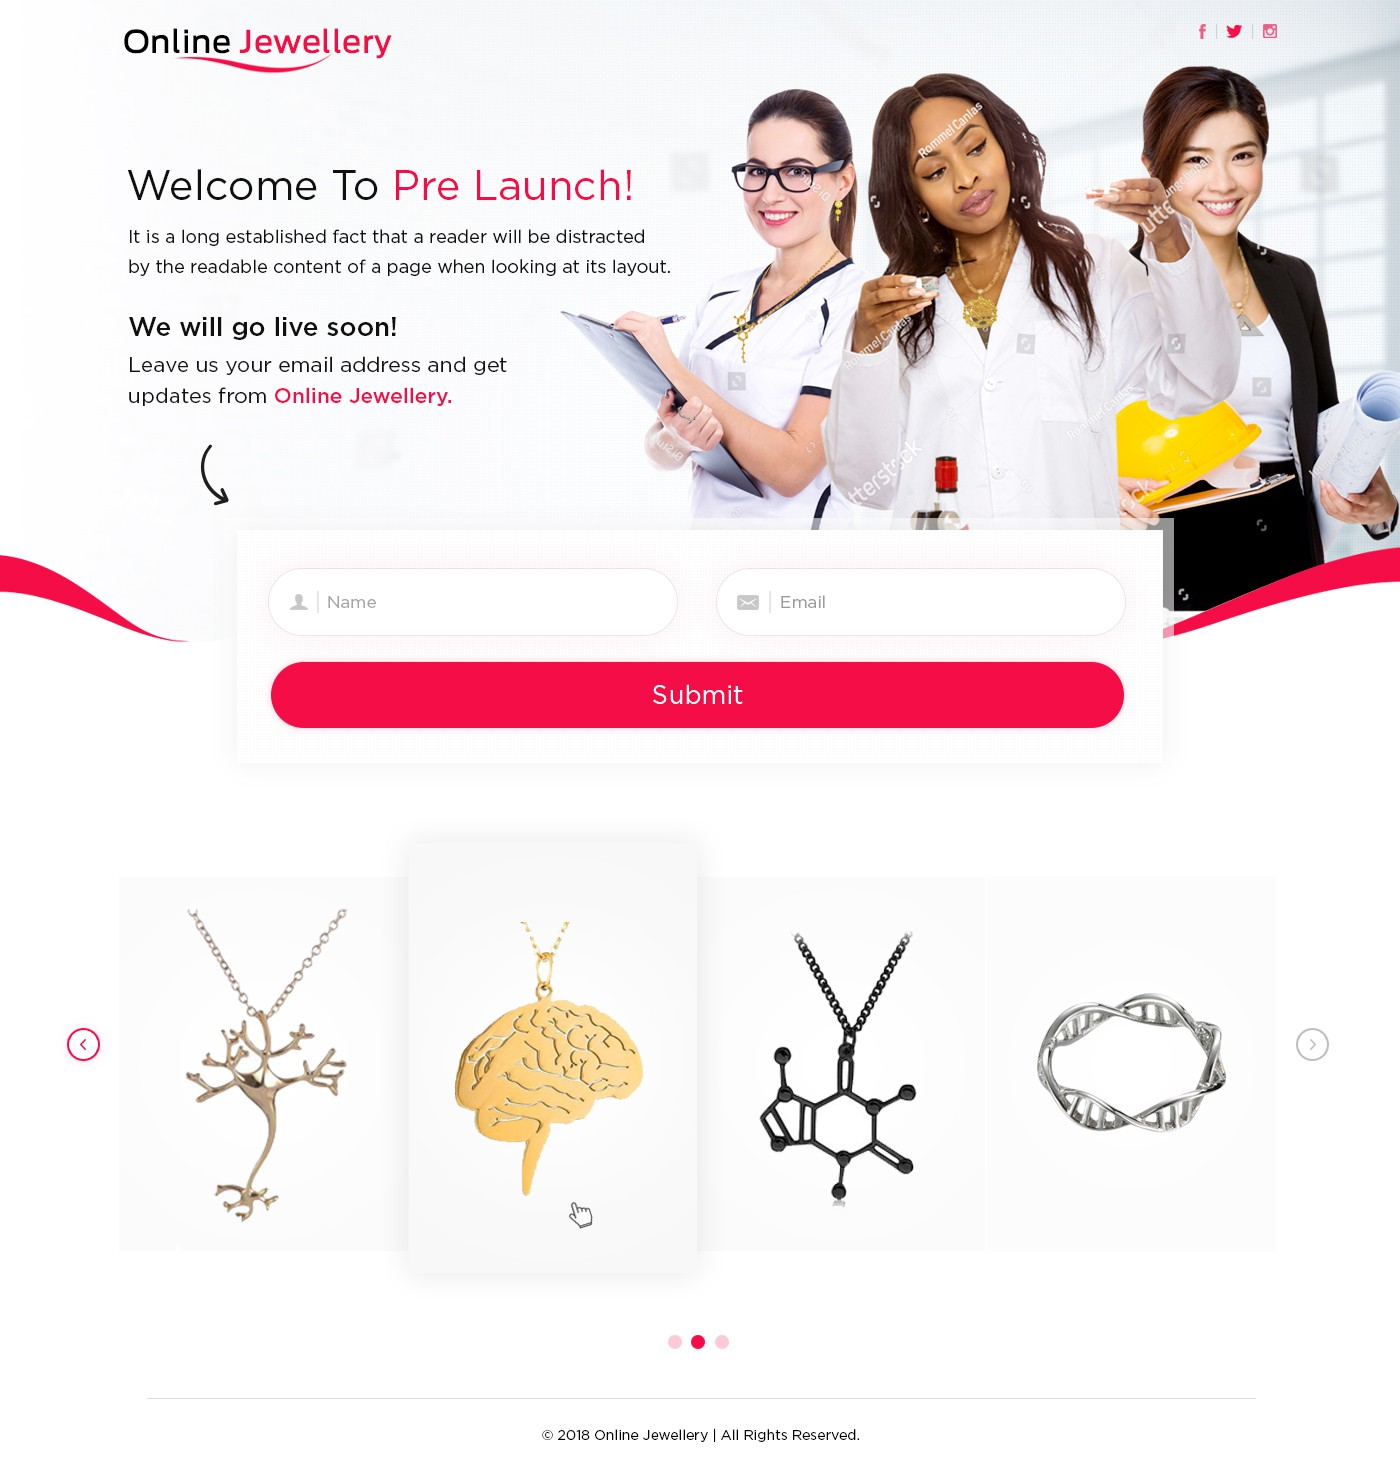 Create an aspirational landing page for a science jewelry e-commerce startup.